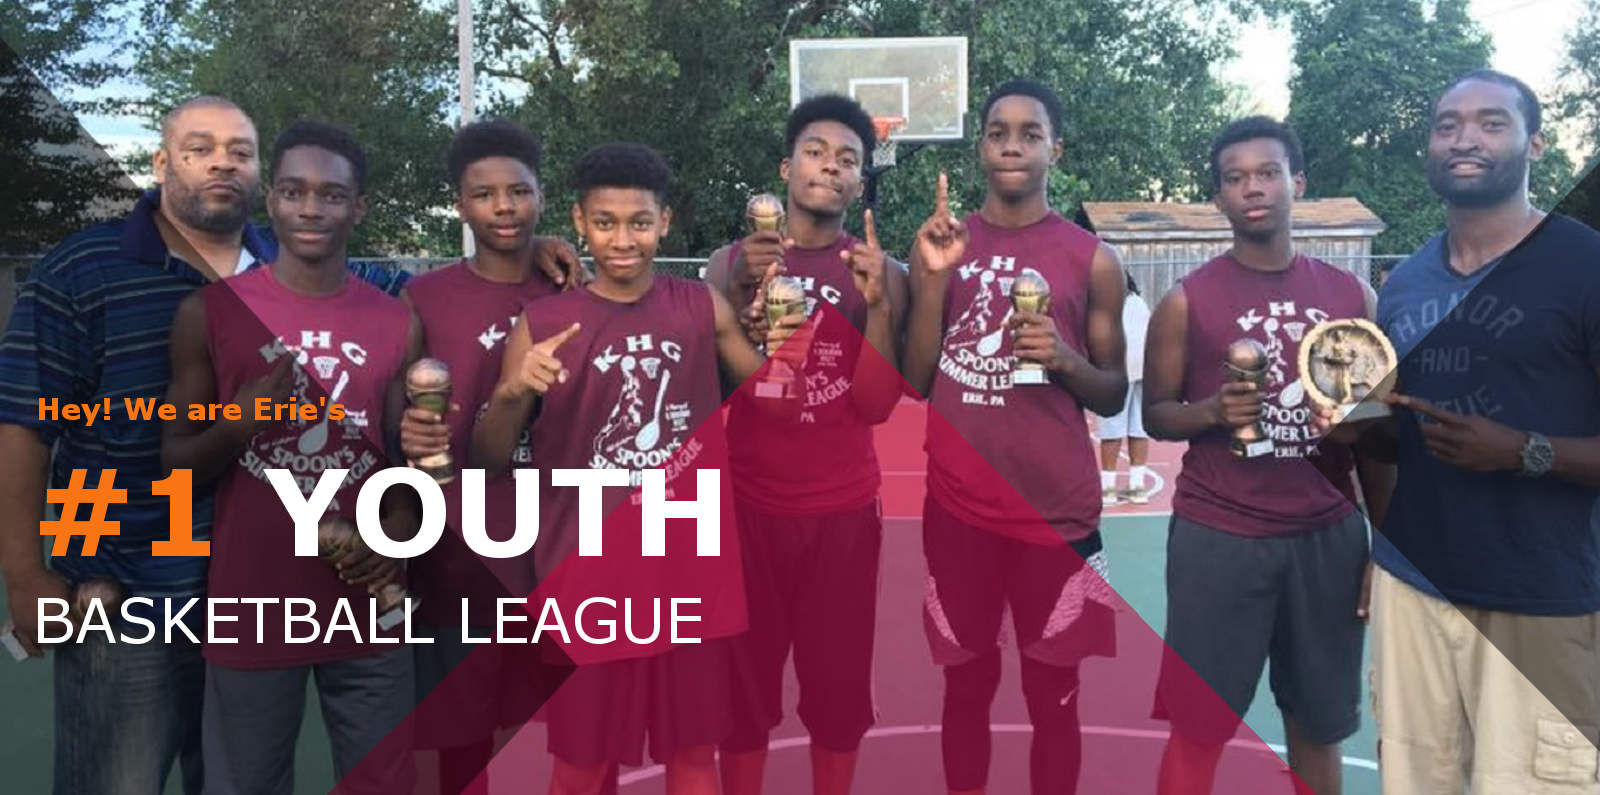 Erie's #1 Youth Basketball League